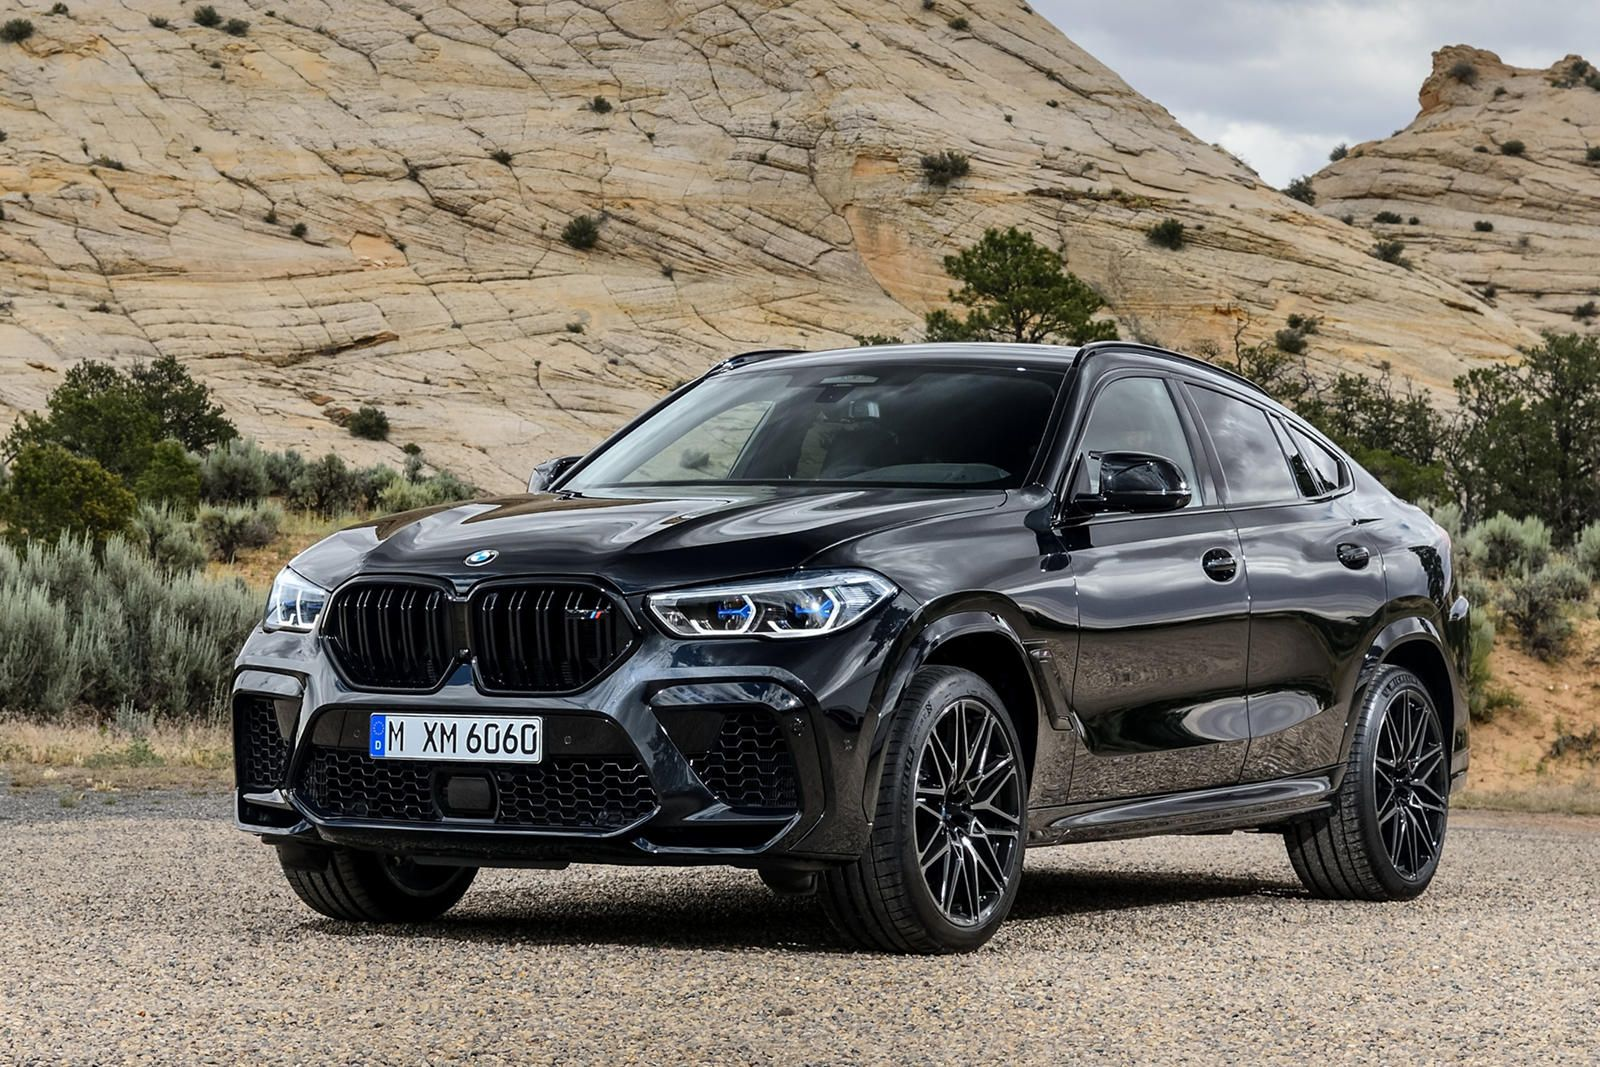 2020 Bmw X6 M First Drive Review It S The Flashy One Bmw S Latest Suv Coupe Is Blisteringly Fast With Attention Seeking Looks In 2020 Bmw X6 Bmw Suv Bmw